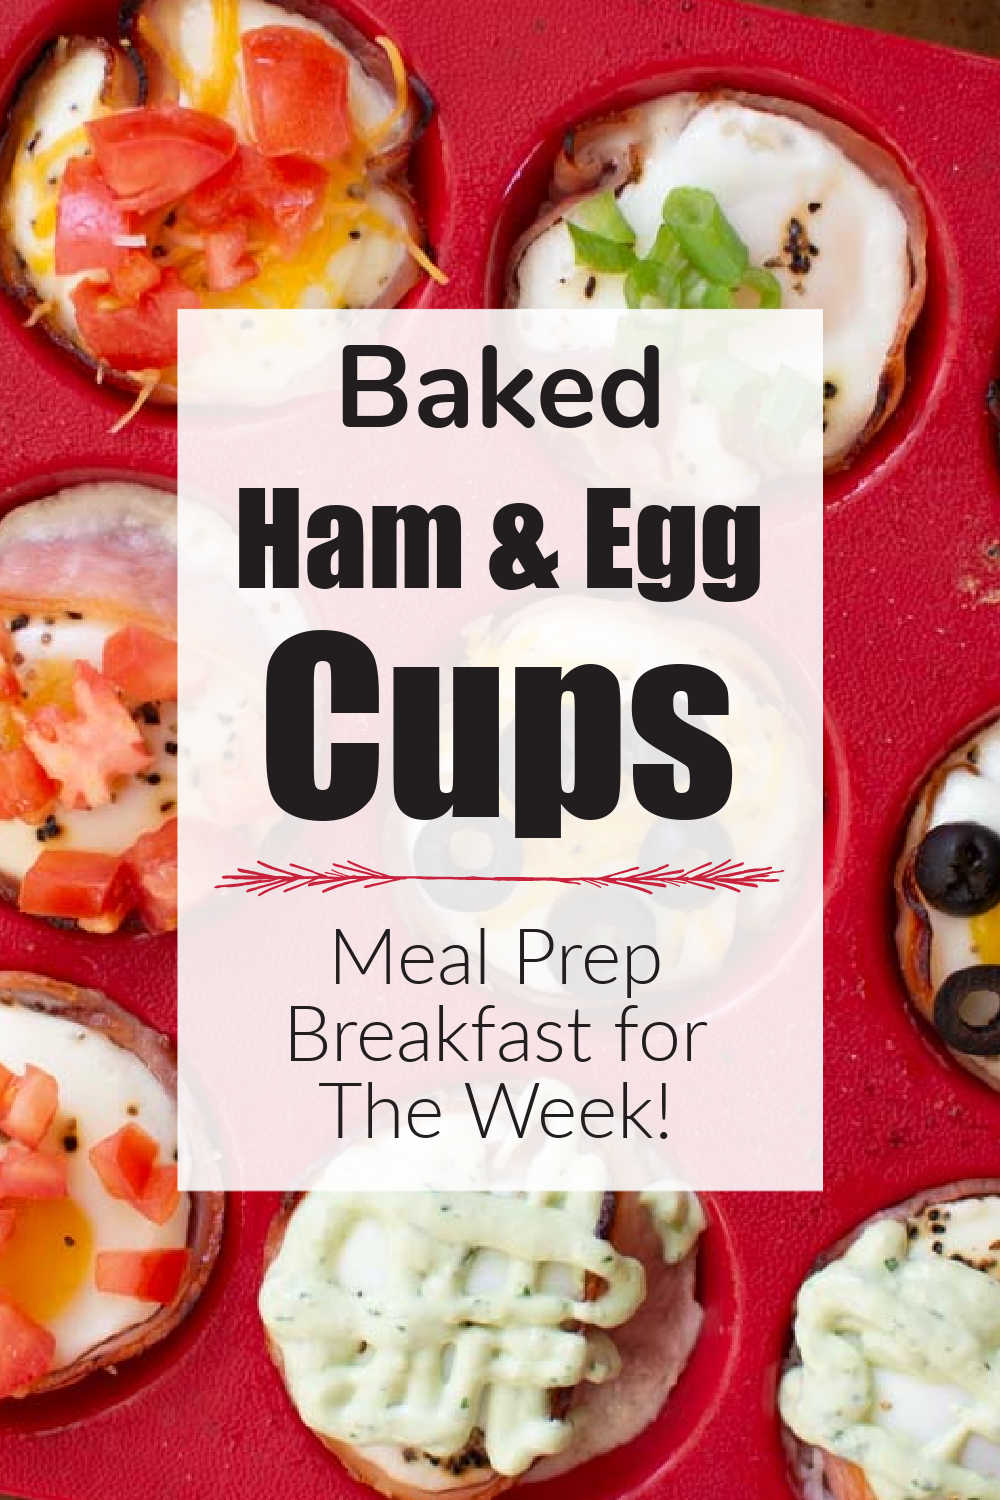 Baked Eggs in Muffin Tins with Ham